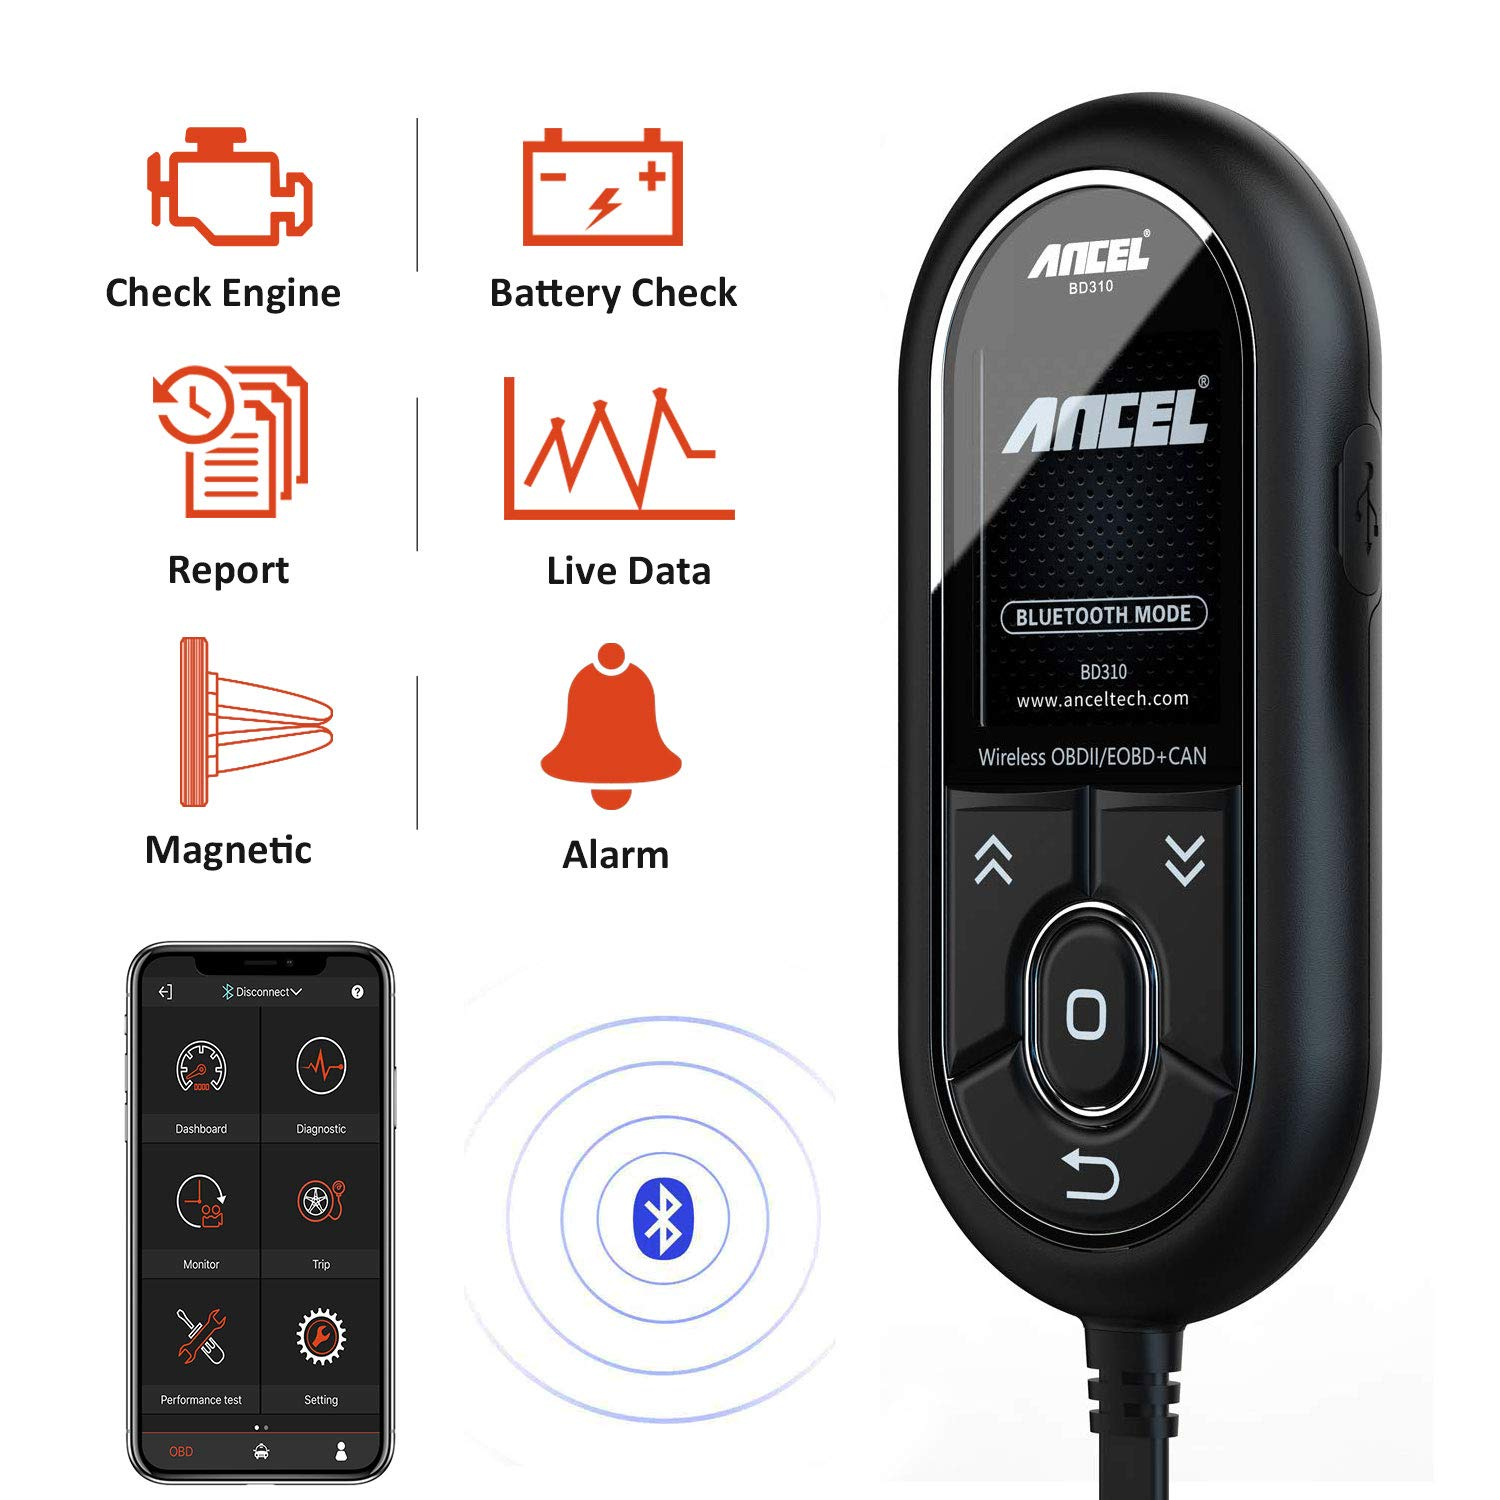 ANCEL BD310 Bluetooth OBDII Scanner with Battery Voltage Check and Exclusive App, Handsfree Magnetic Mount Attaching to Dash While Driving